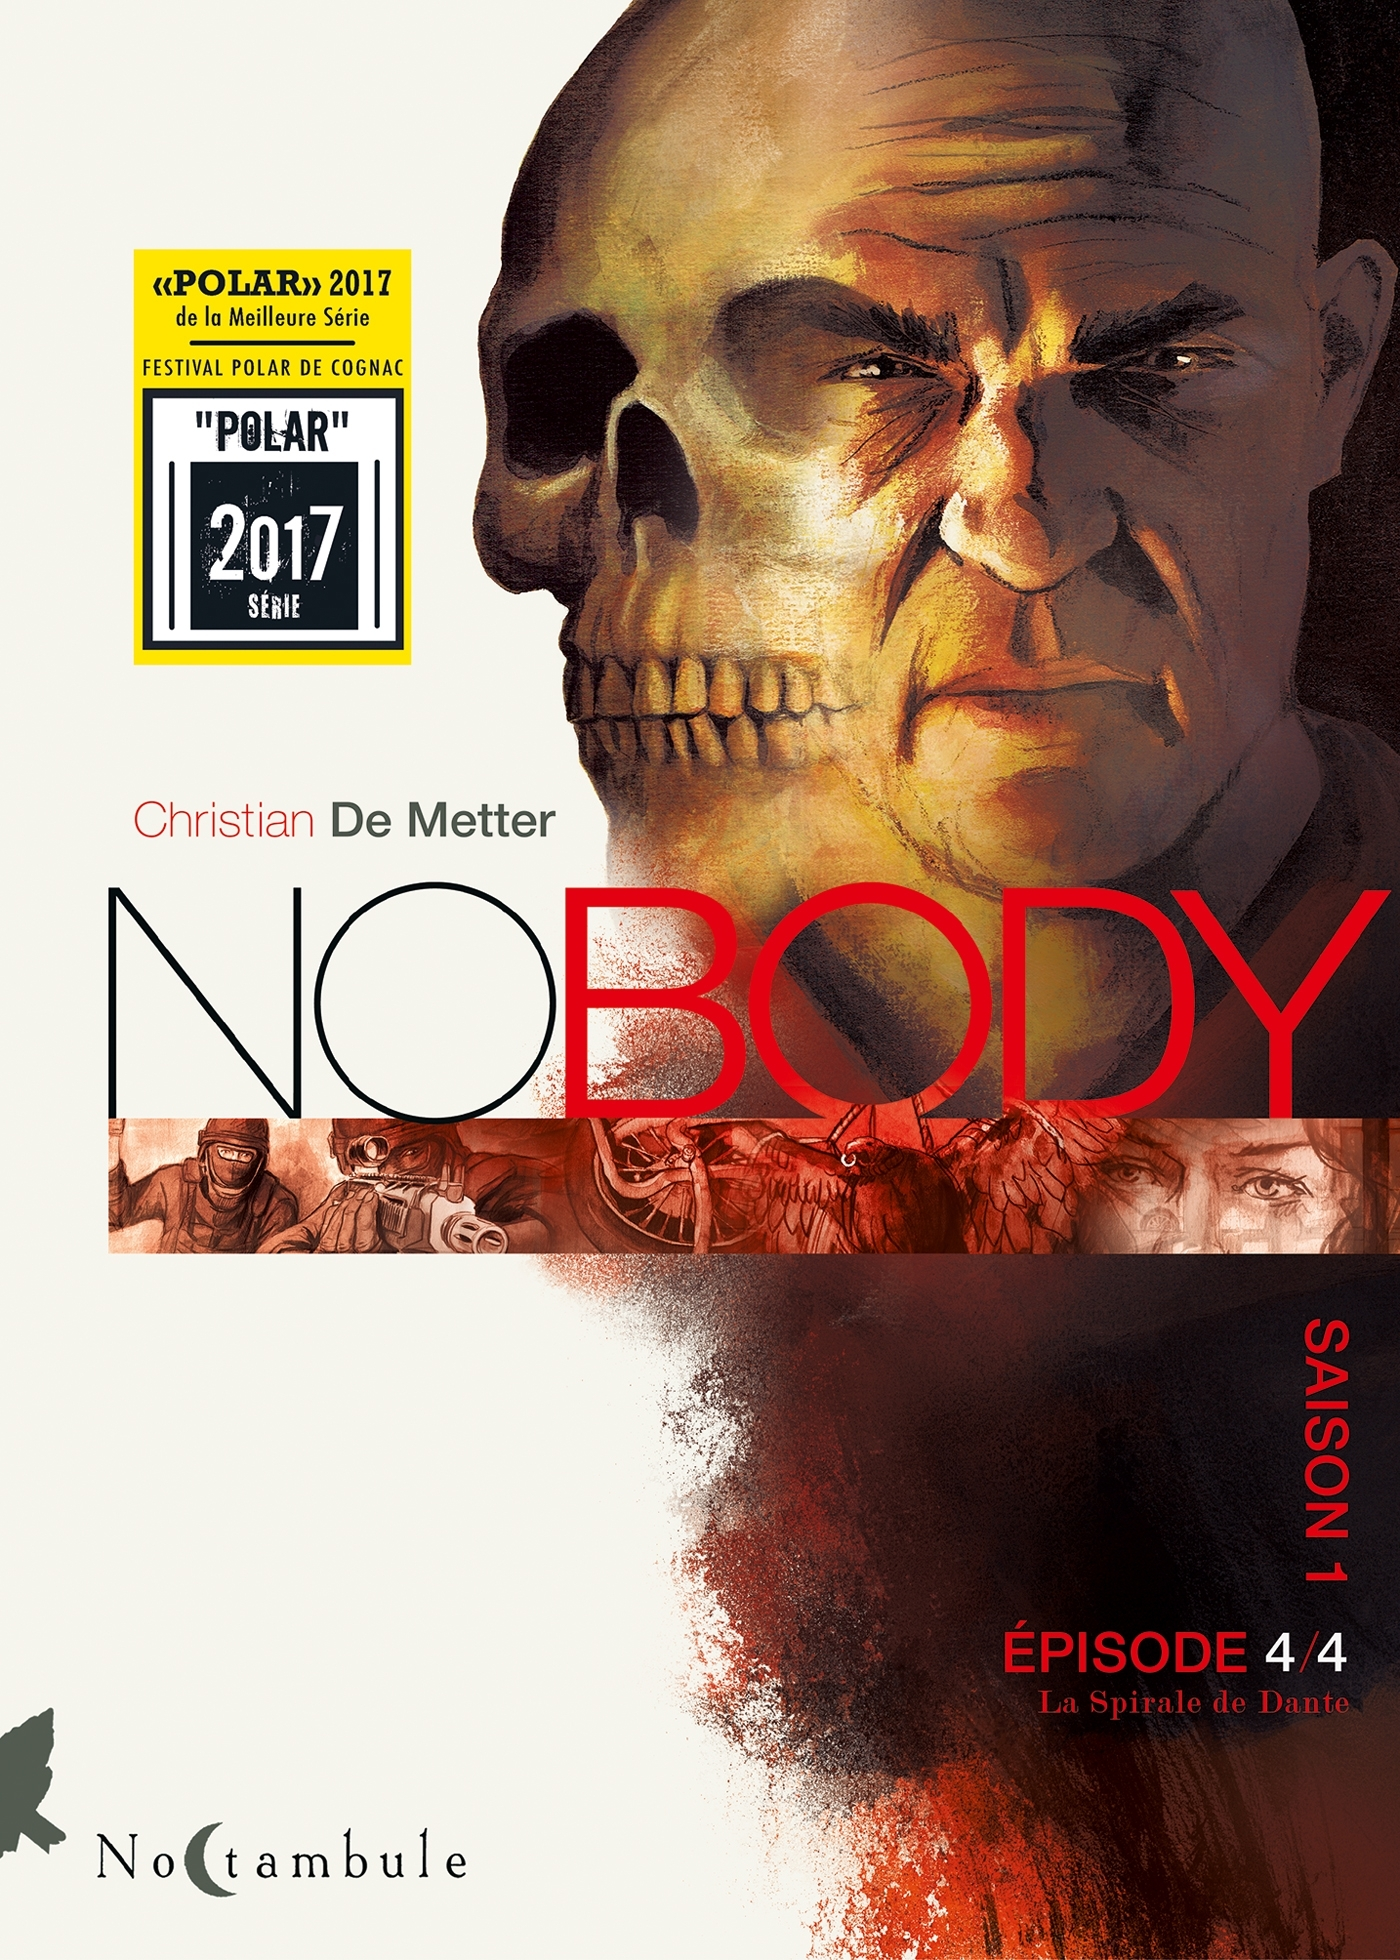 NO BODY SAISON 1 EPISODE 4 - LA SPIRALE DE DANTE